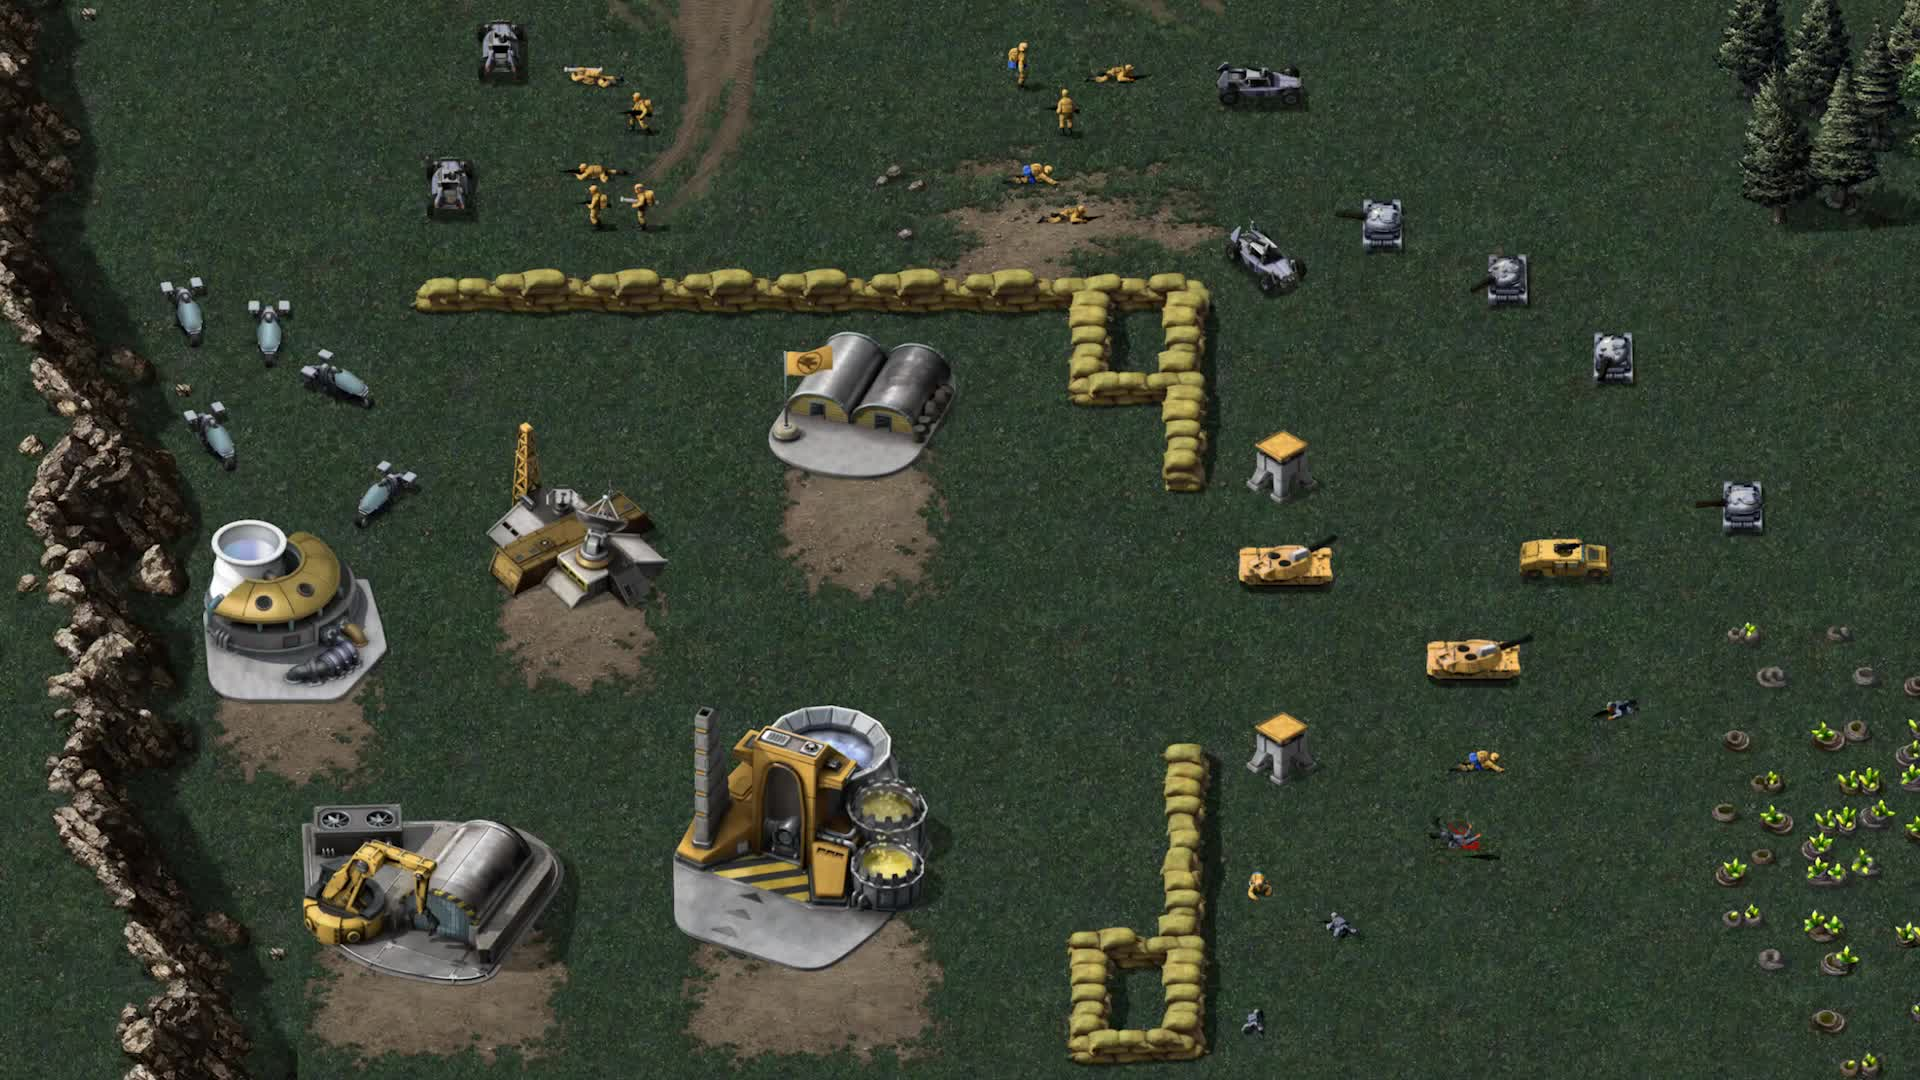 Command And Conquer Remastered GIF by Hu3Br | Gfycat